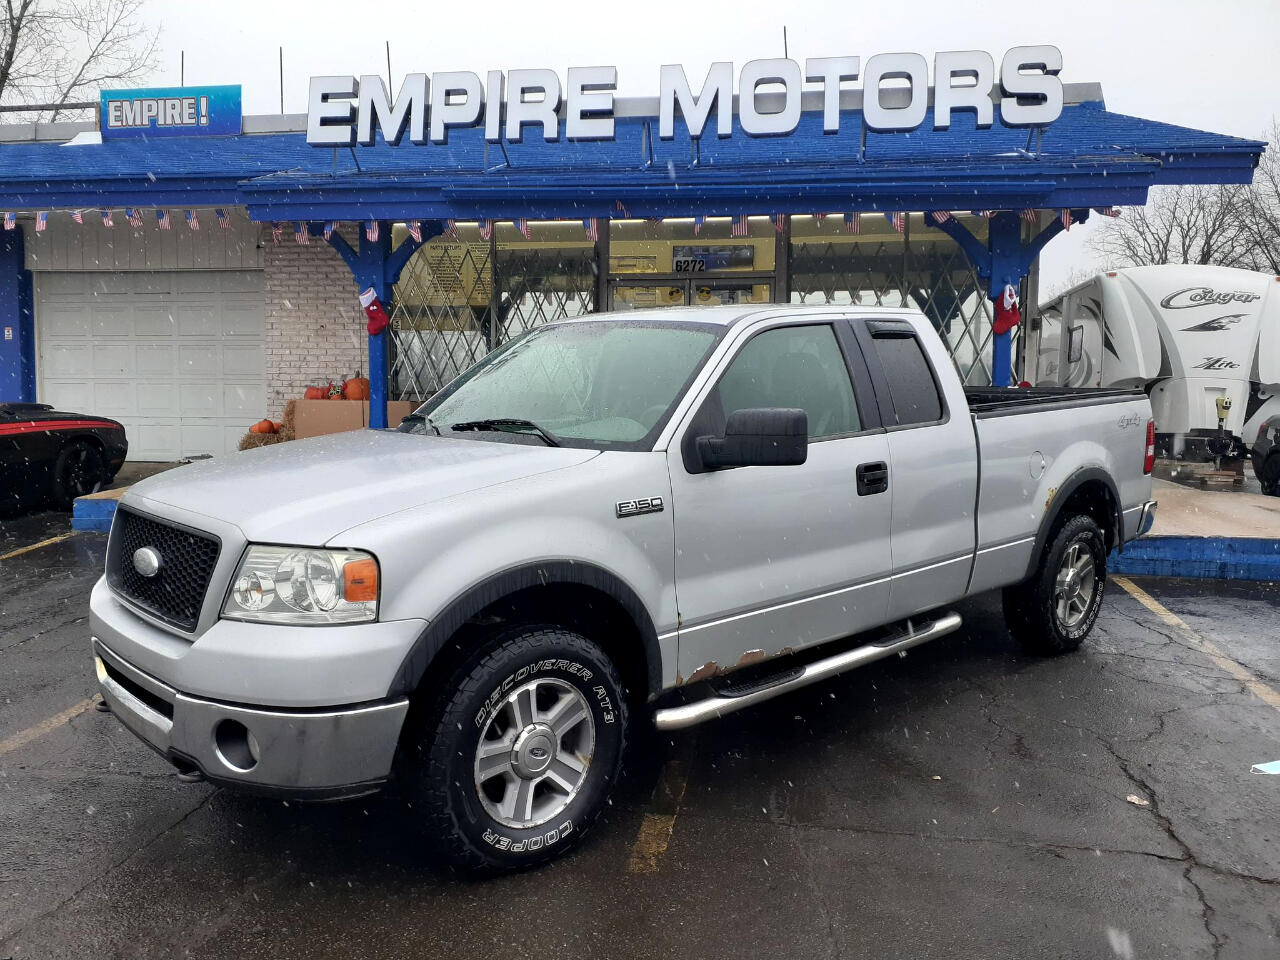 Used 2006 Ford F 150 Fx4 Supercab 5 5 Ft Box For Sale In Lansing Mi 48911 Empire Motors Of Lansing